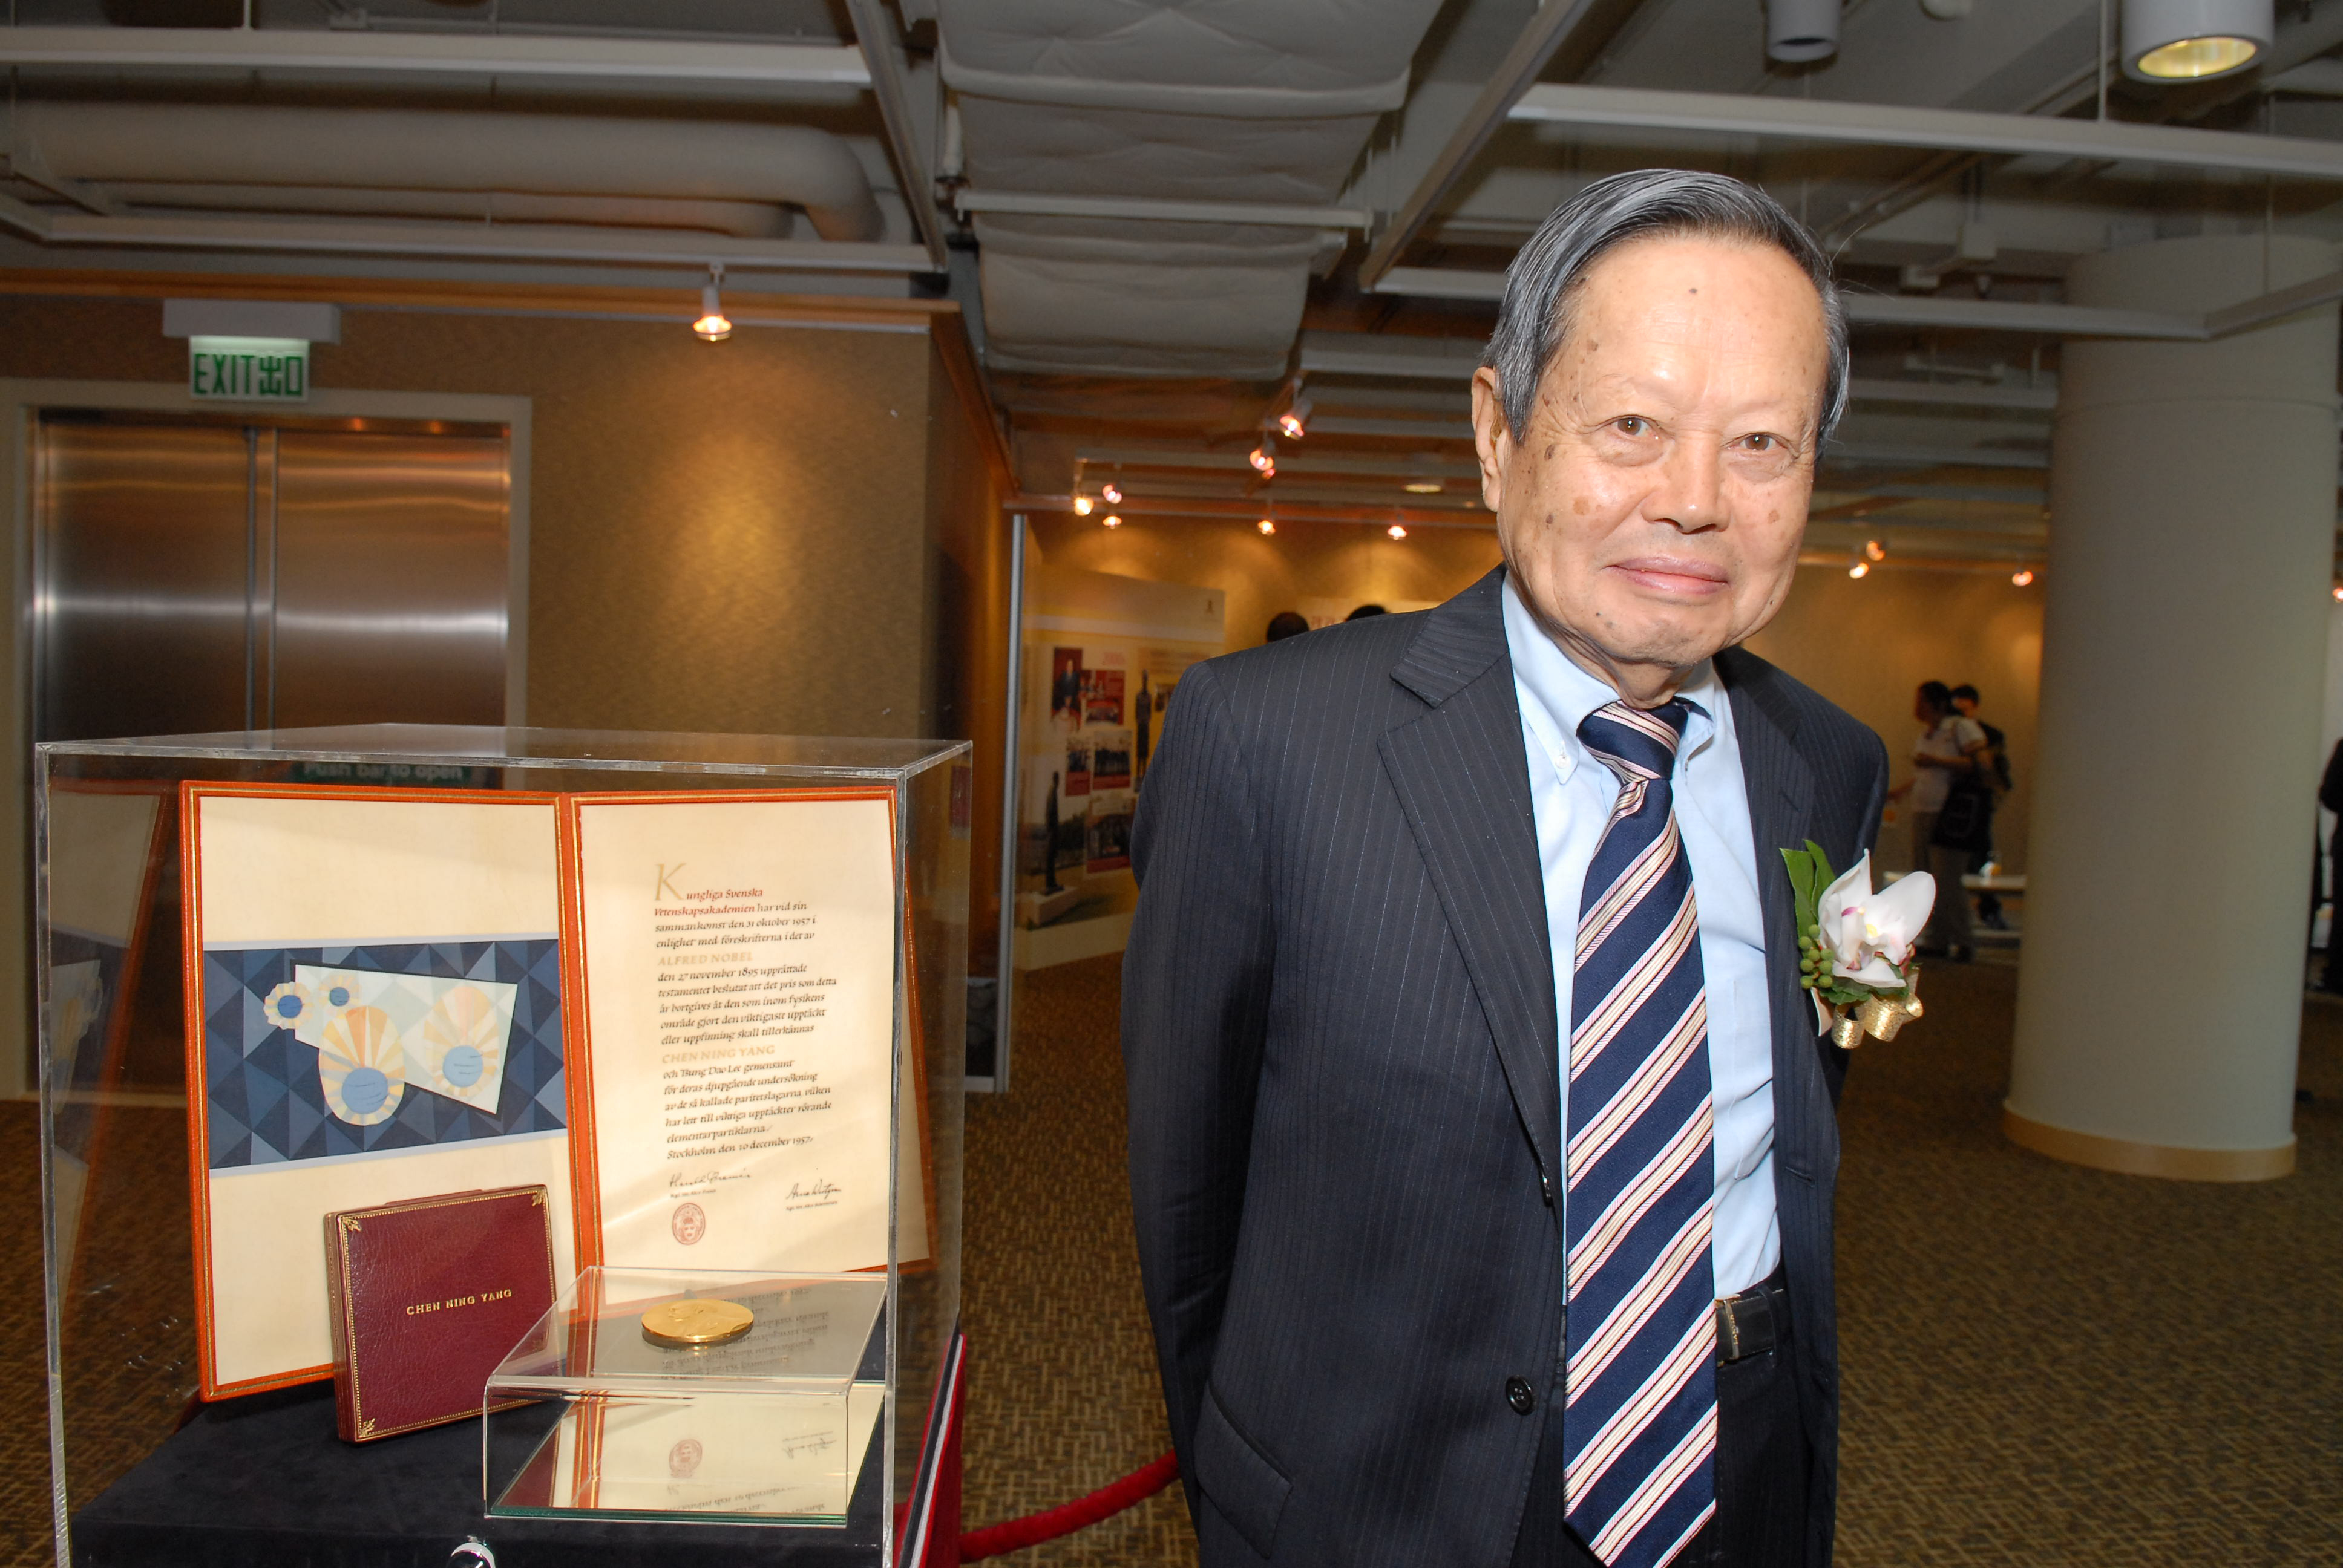 Professor Yang Chen Ning's Nobel medal is on public display to mark the 50th anniversary of his winning the Nobel prize